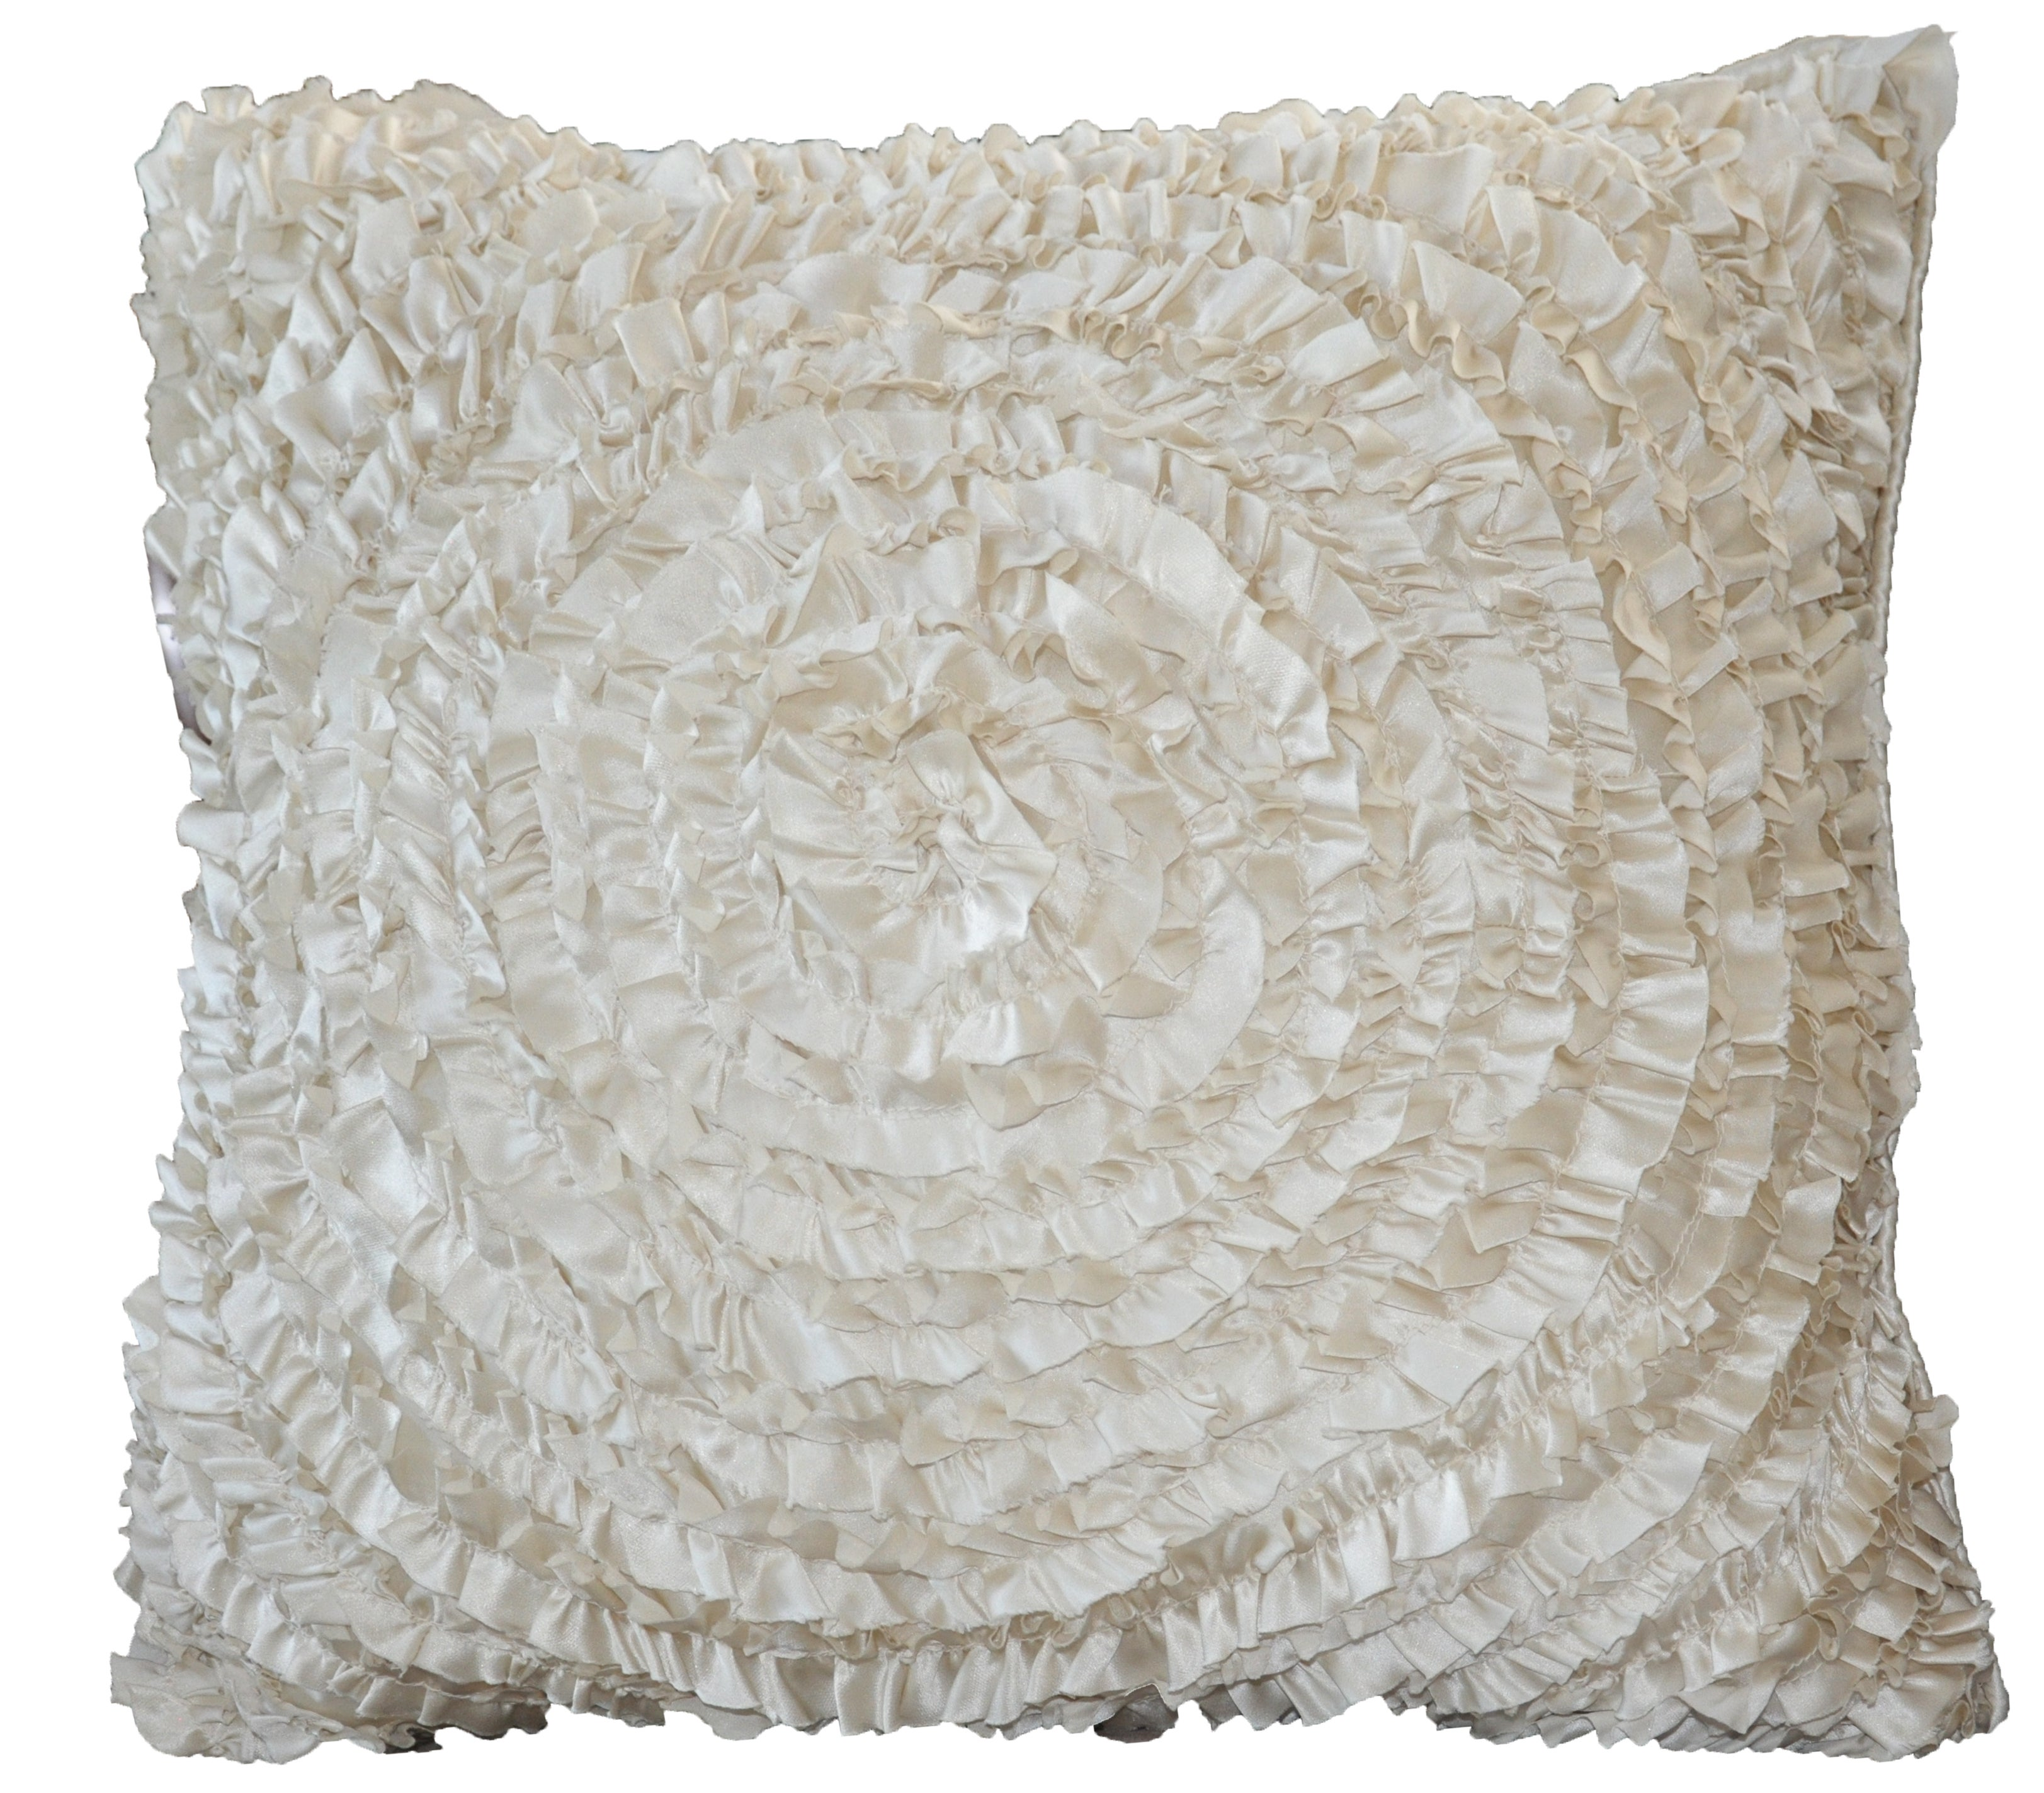 Throw Pillows With Ruffles : Victoria Dupioni Silk Ruffles Ivory Throw Pillow - Free Shipping Today - Overstock.com - 13943655